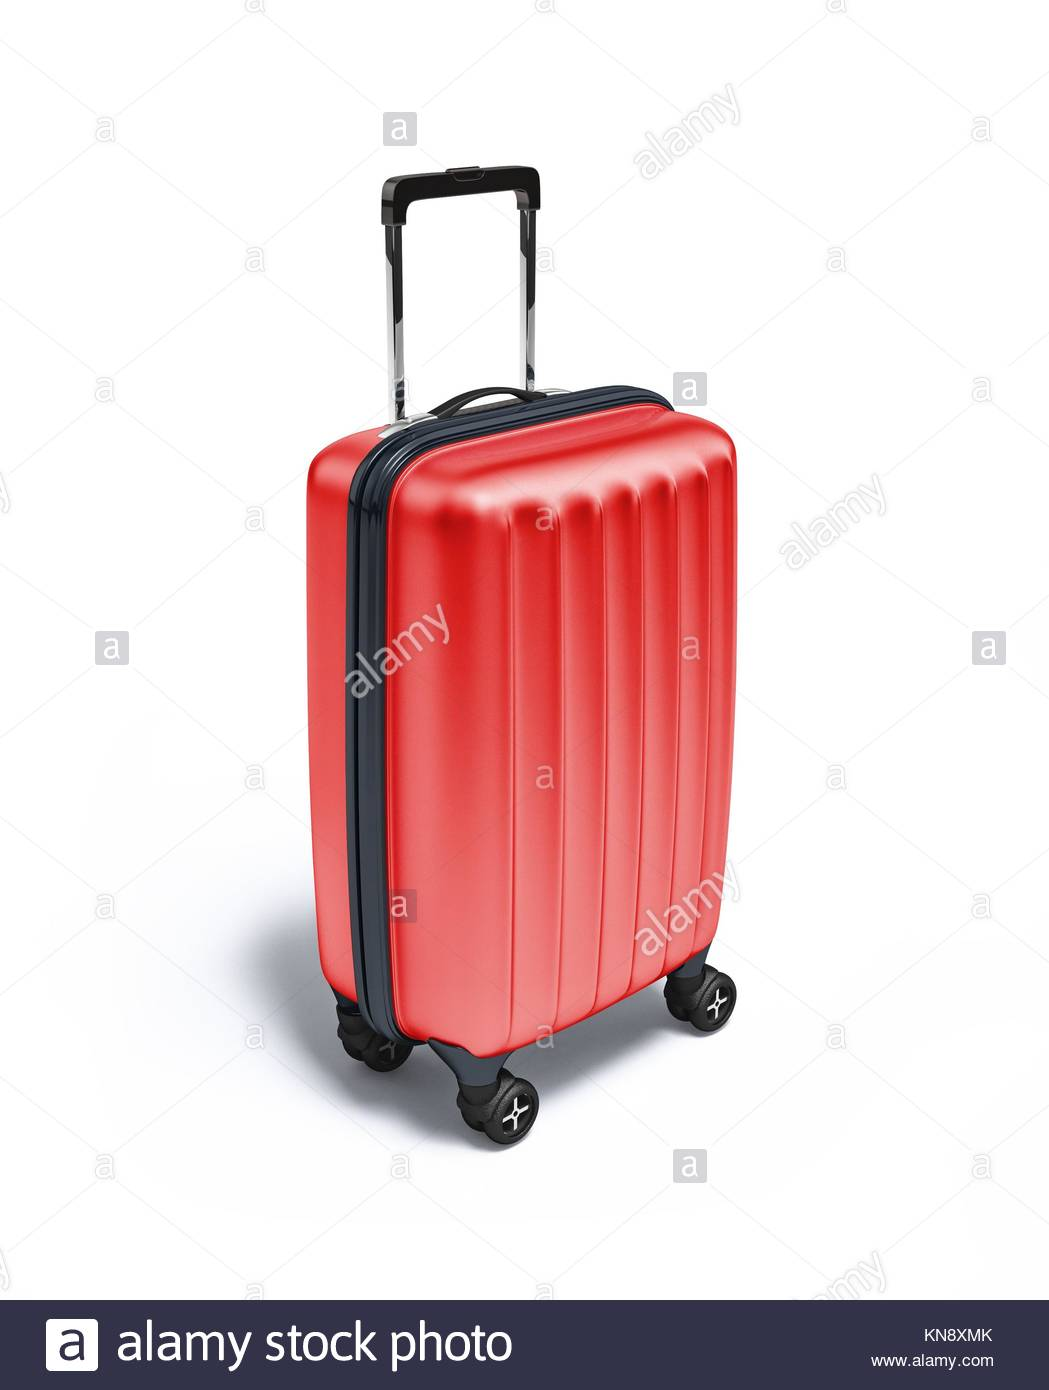 Red Travel suitcase on wheels, on white background. With clipping path included. - Stock Image